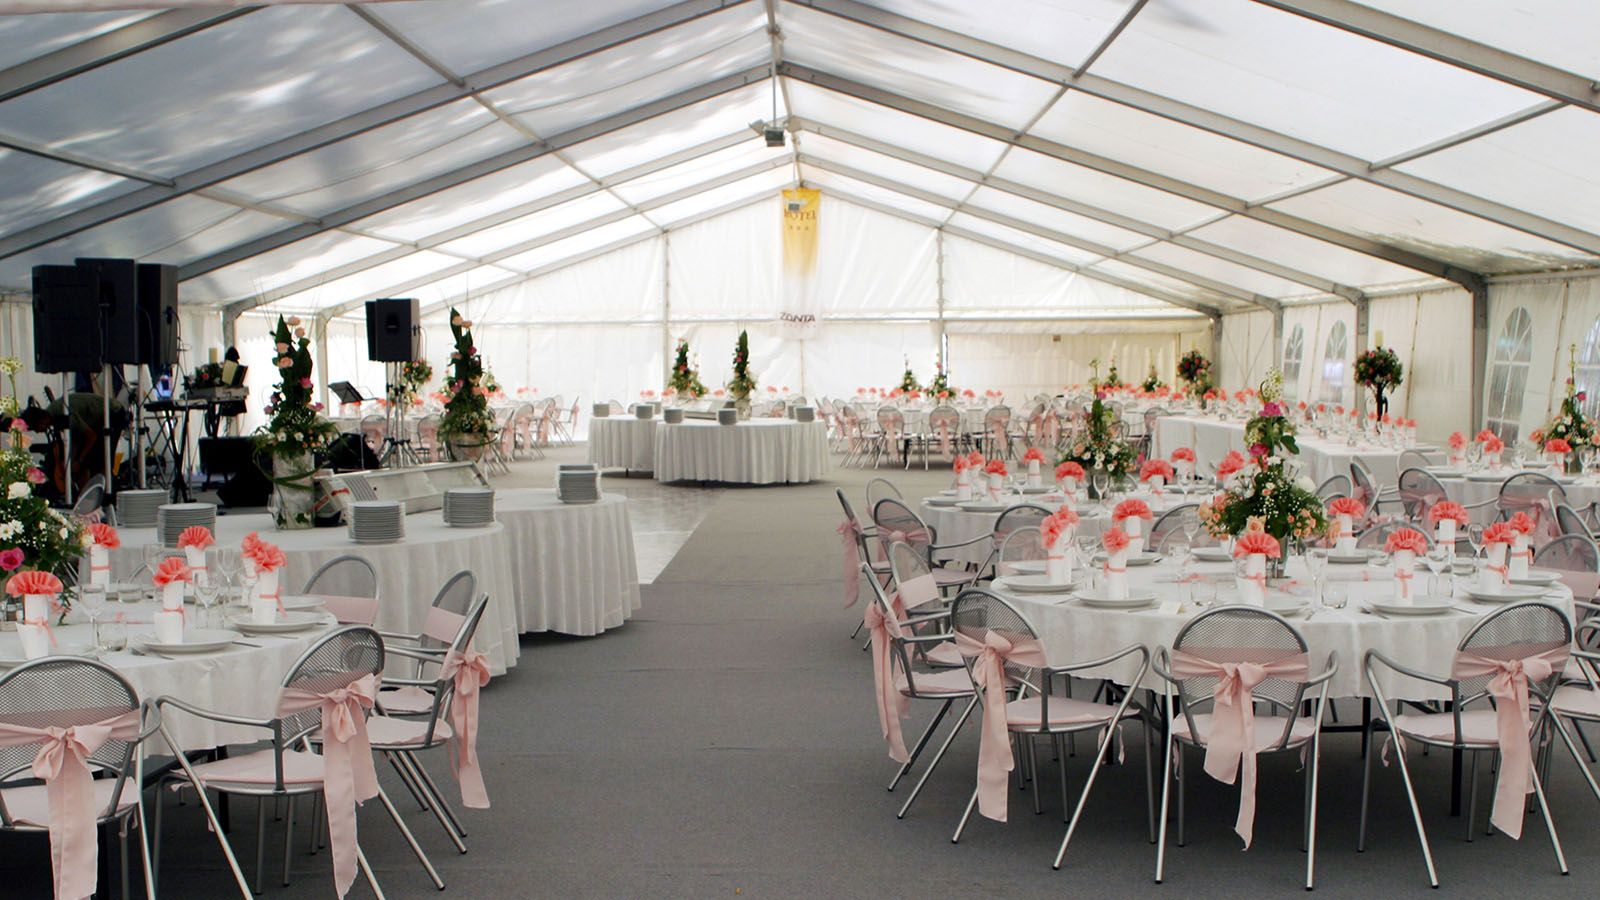 PARTY AND EVENT TENTS